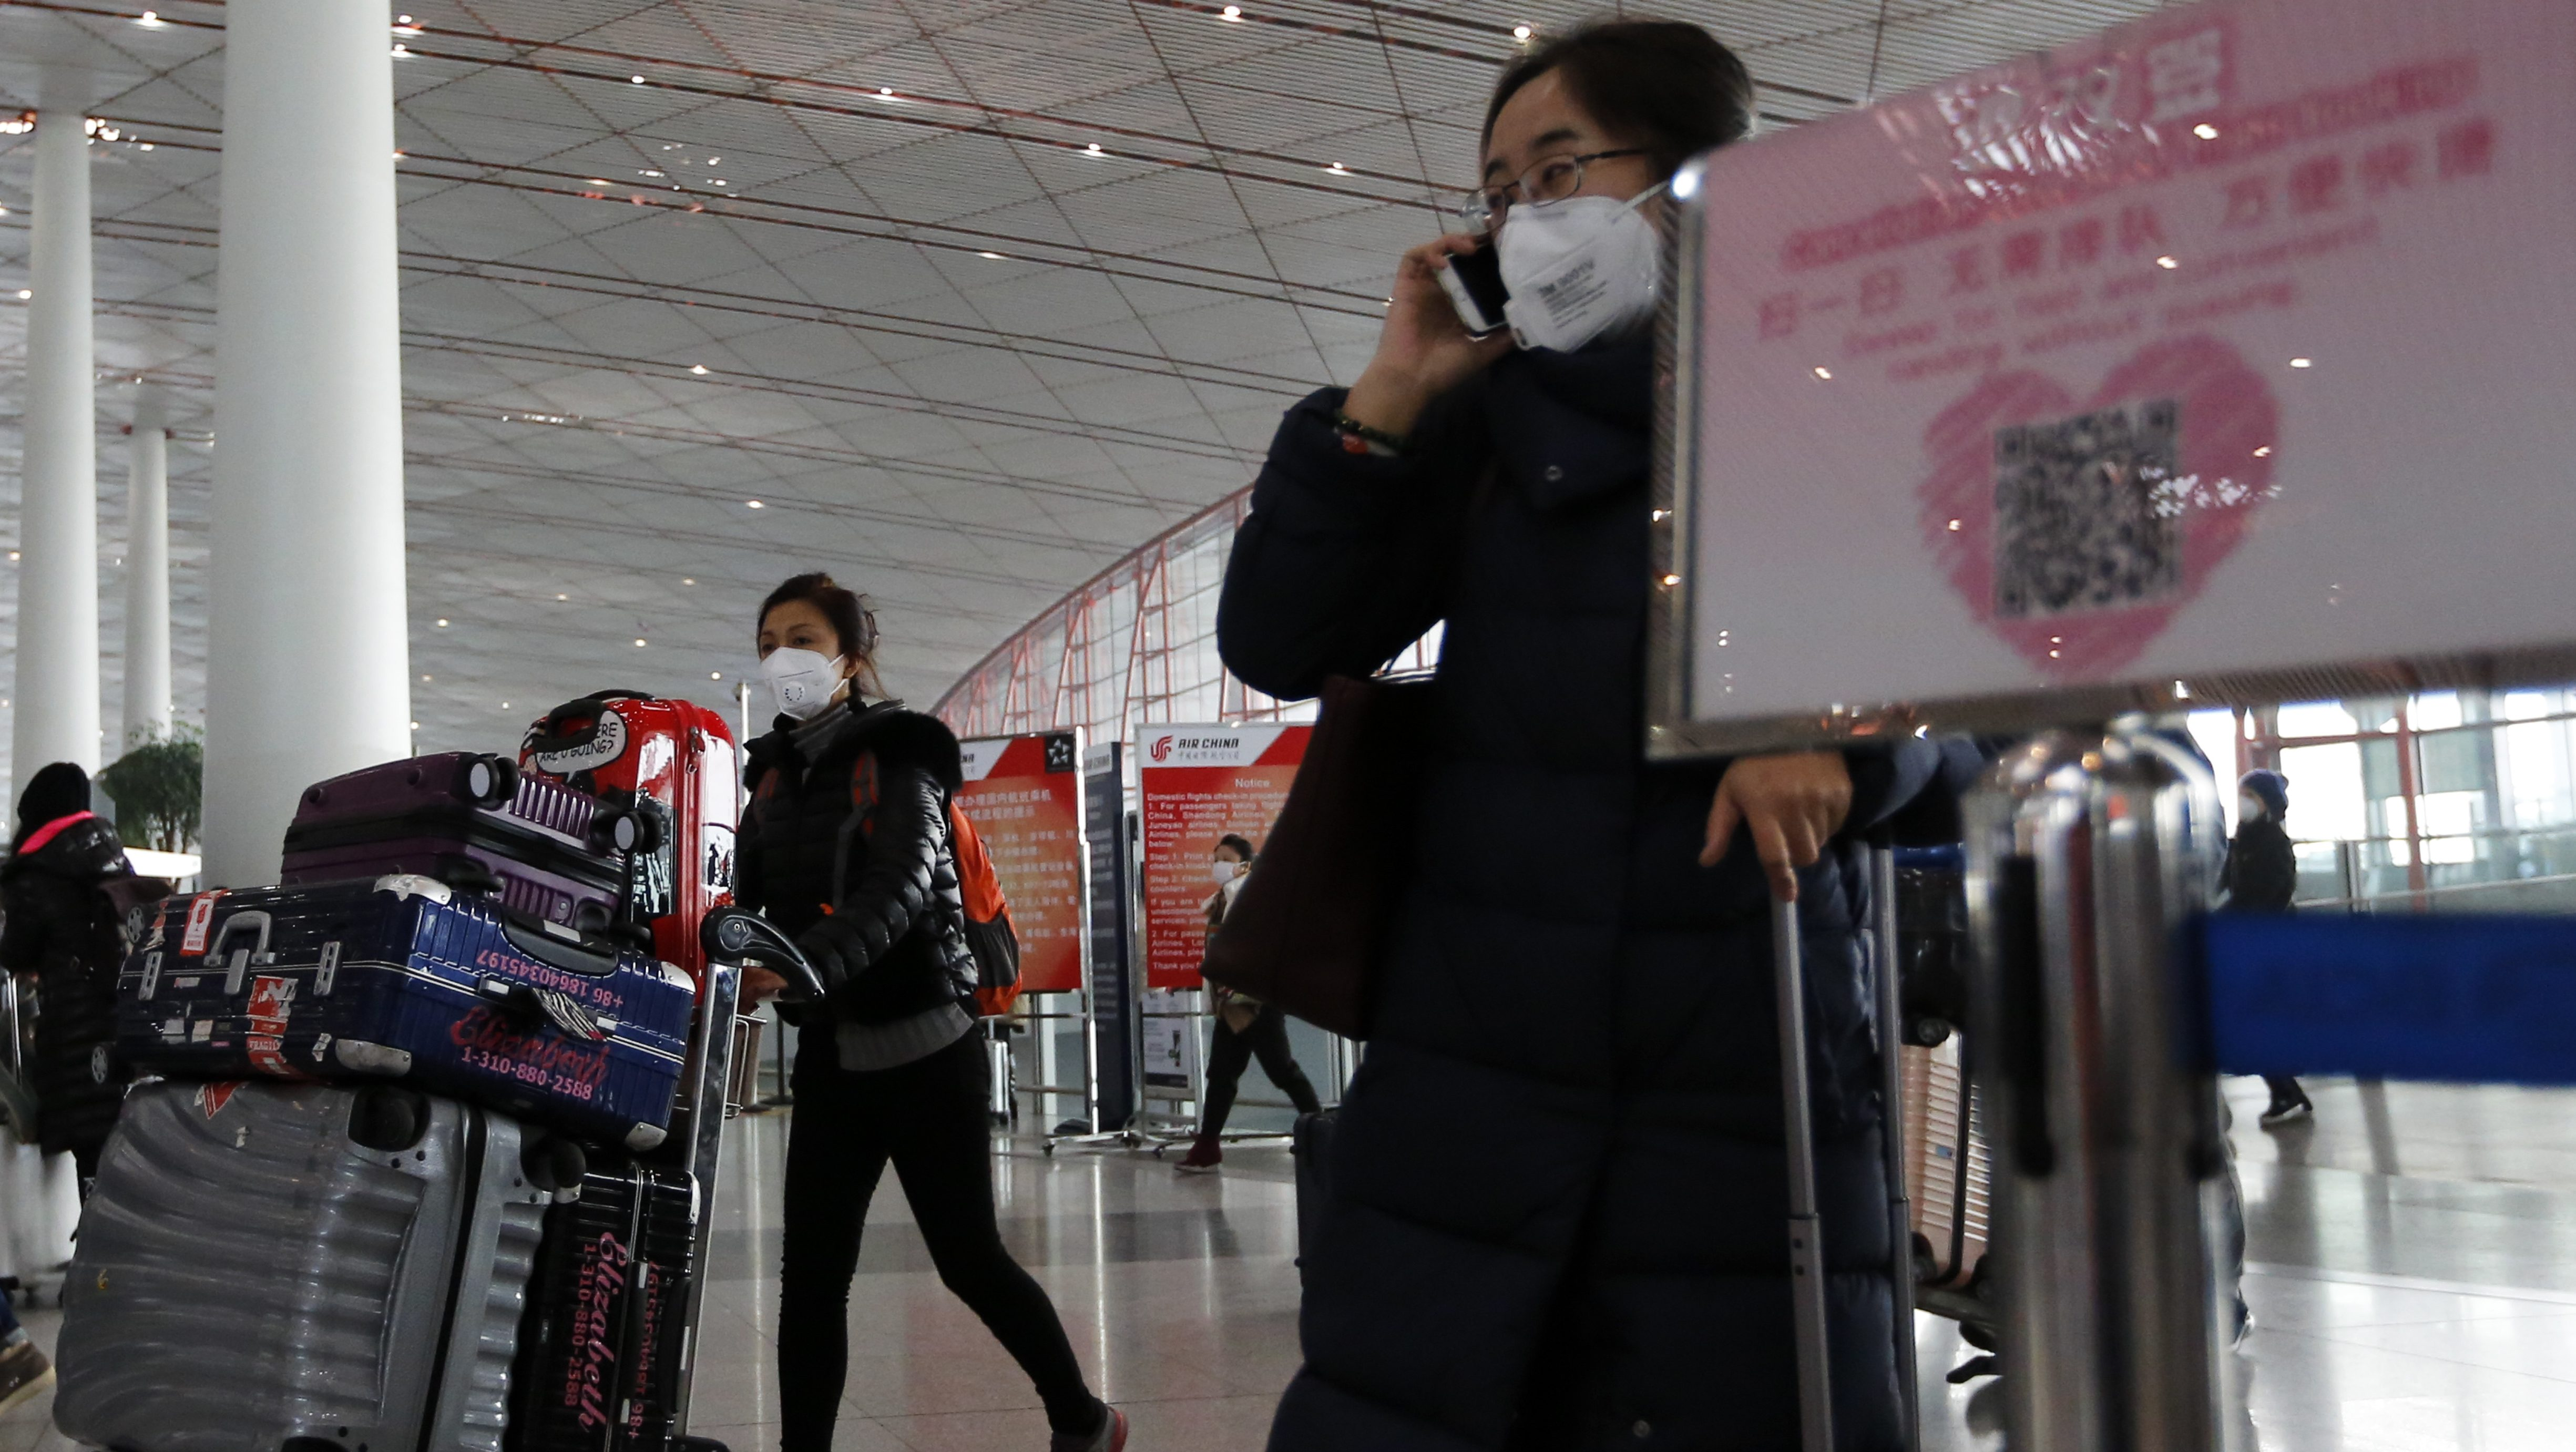 "People wearing masks for protection against air pollution push their luggage at the Beijing Capital International Airport as the capital of China is shrouded by heavy smog on Wednesday, Dec. 21, 2016. Beijing and much of industrial northern China are in the midst of a ""red alert,"" the highest level in China's four-tiered pollution warning system. The alert has affected 460 million people, according to Greenpeace East Asia, which calculated that about 200 million people were living in areas that had experienced levels of air pollution more than 10 times above the guideline set by the World Health Organization. (AP Photo/Andy Wong)"